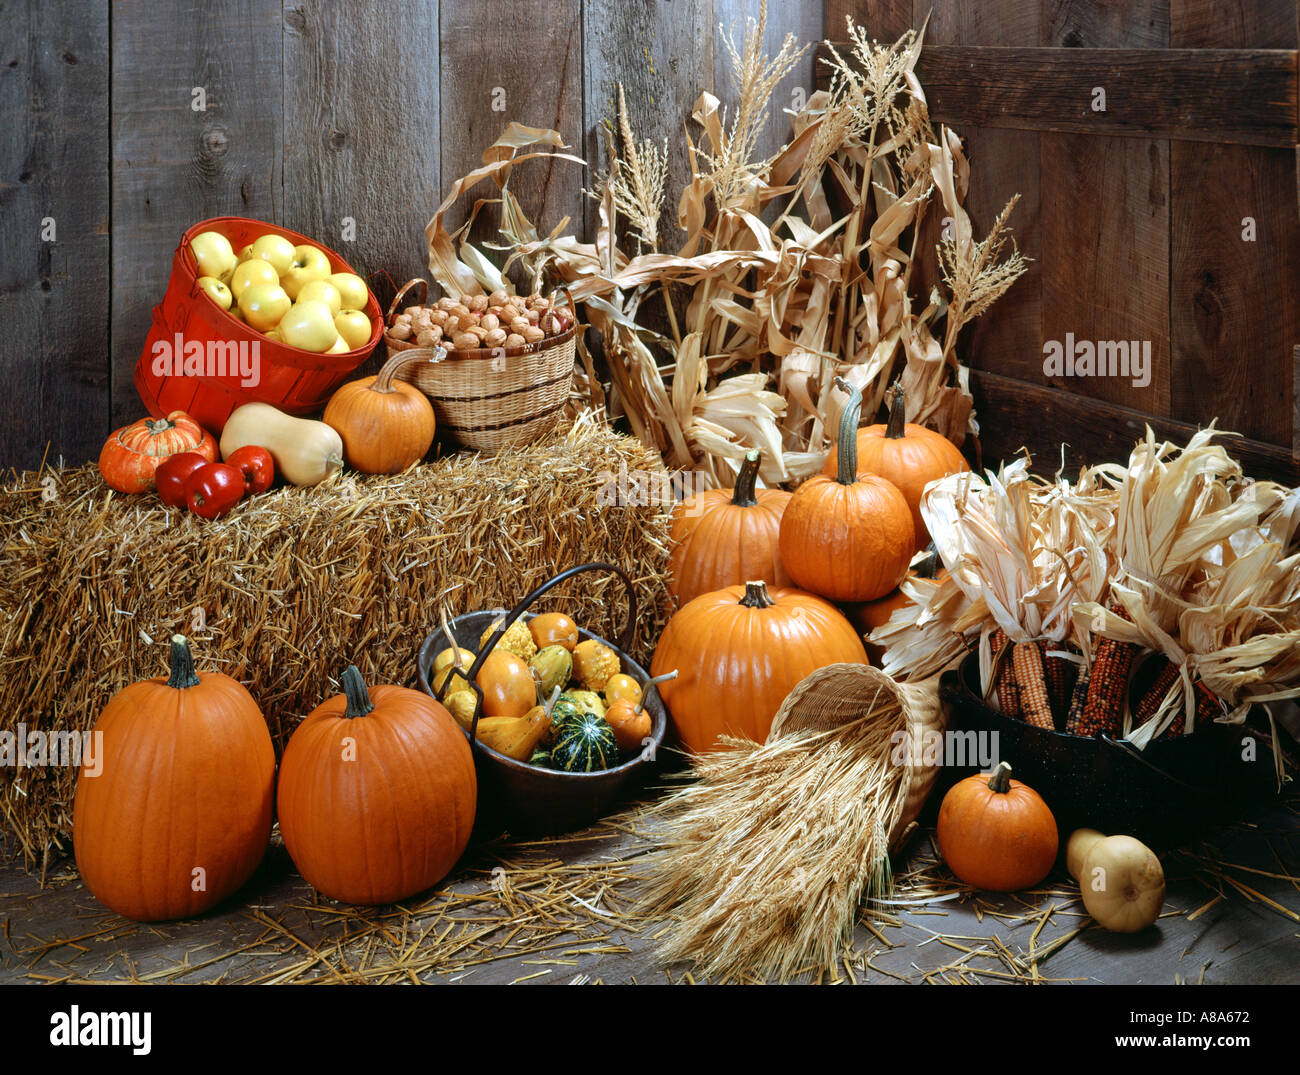 Fall Harvest Computer Wallpaper Fall Harvest Still Life With Bale Of Hay And Old Wood